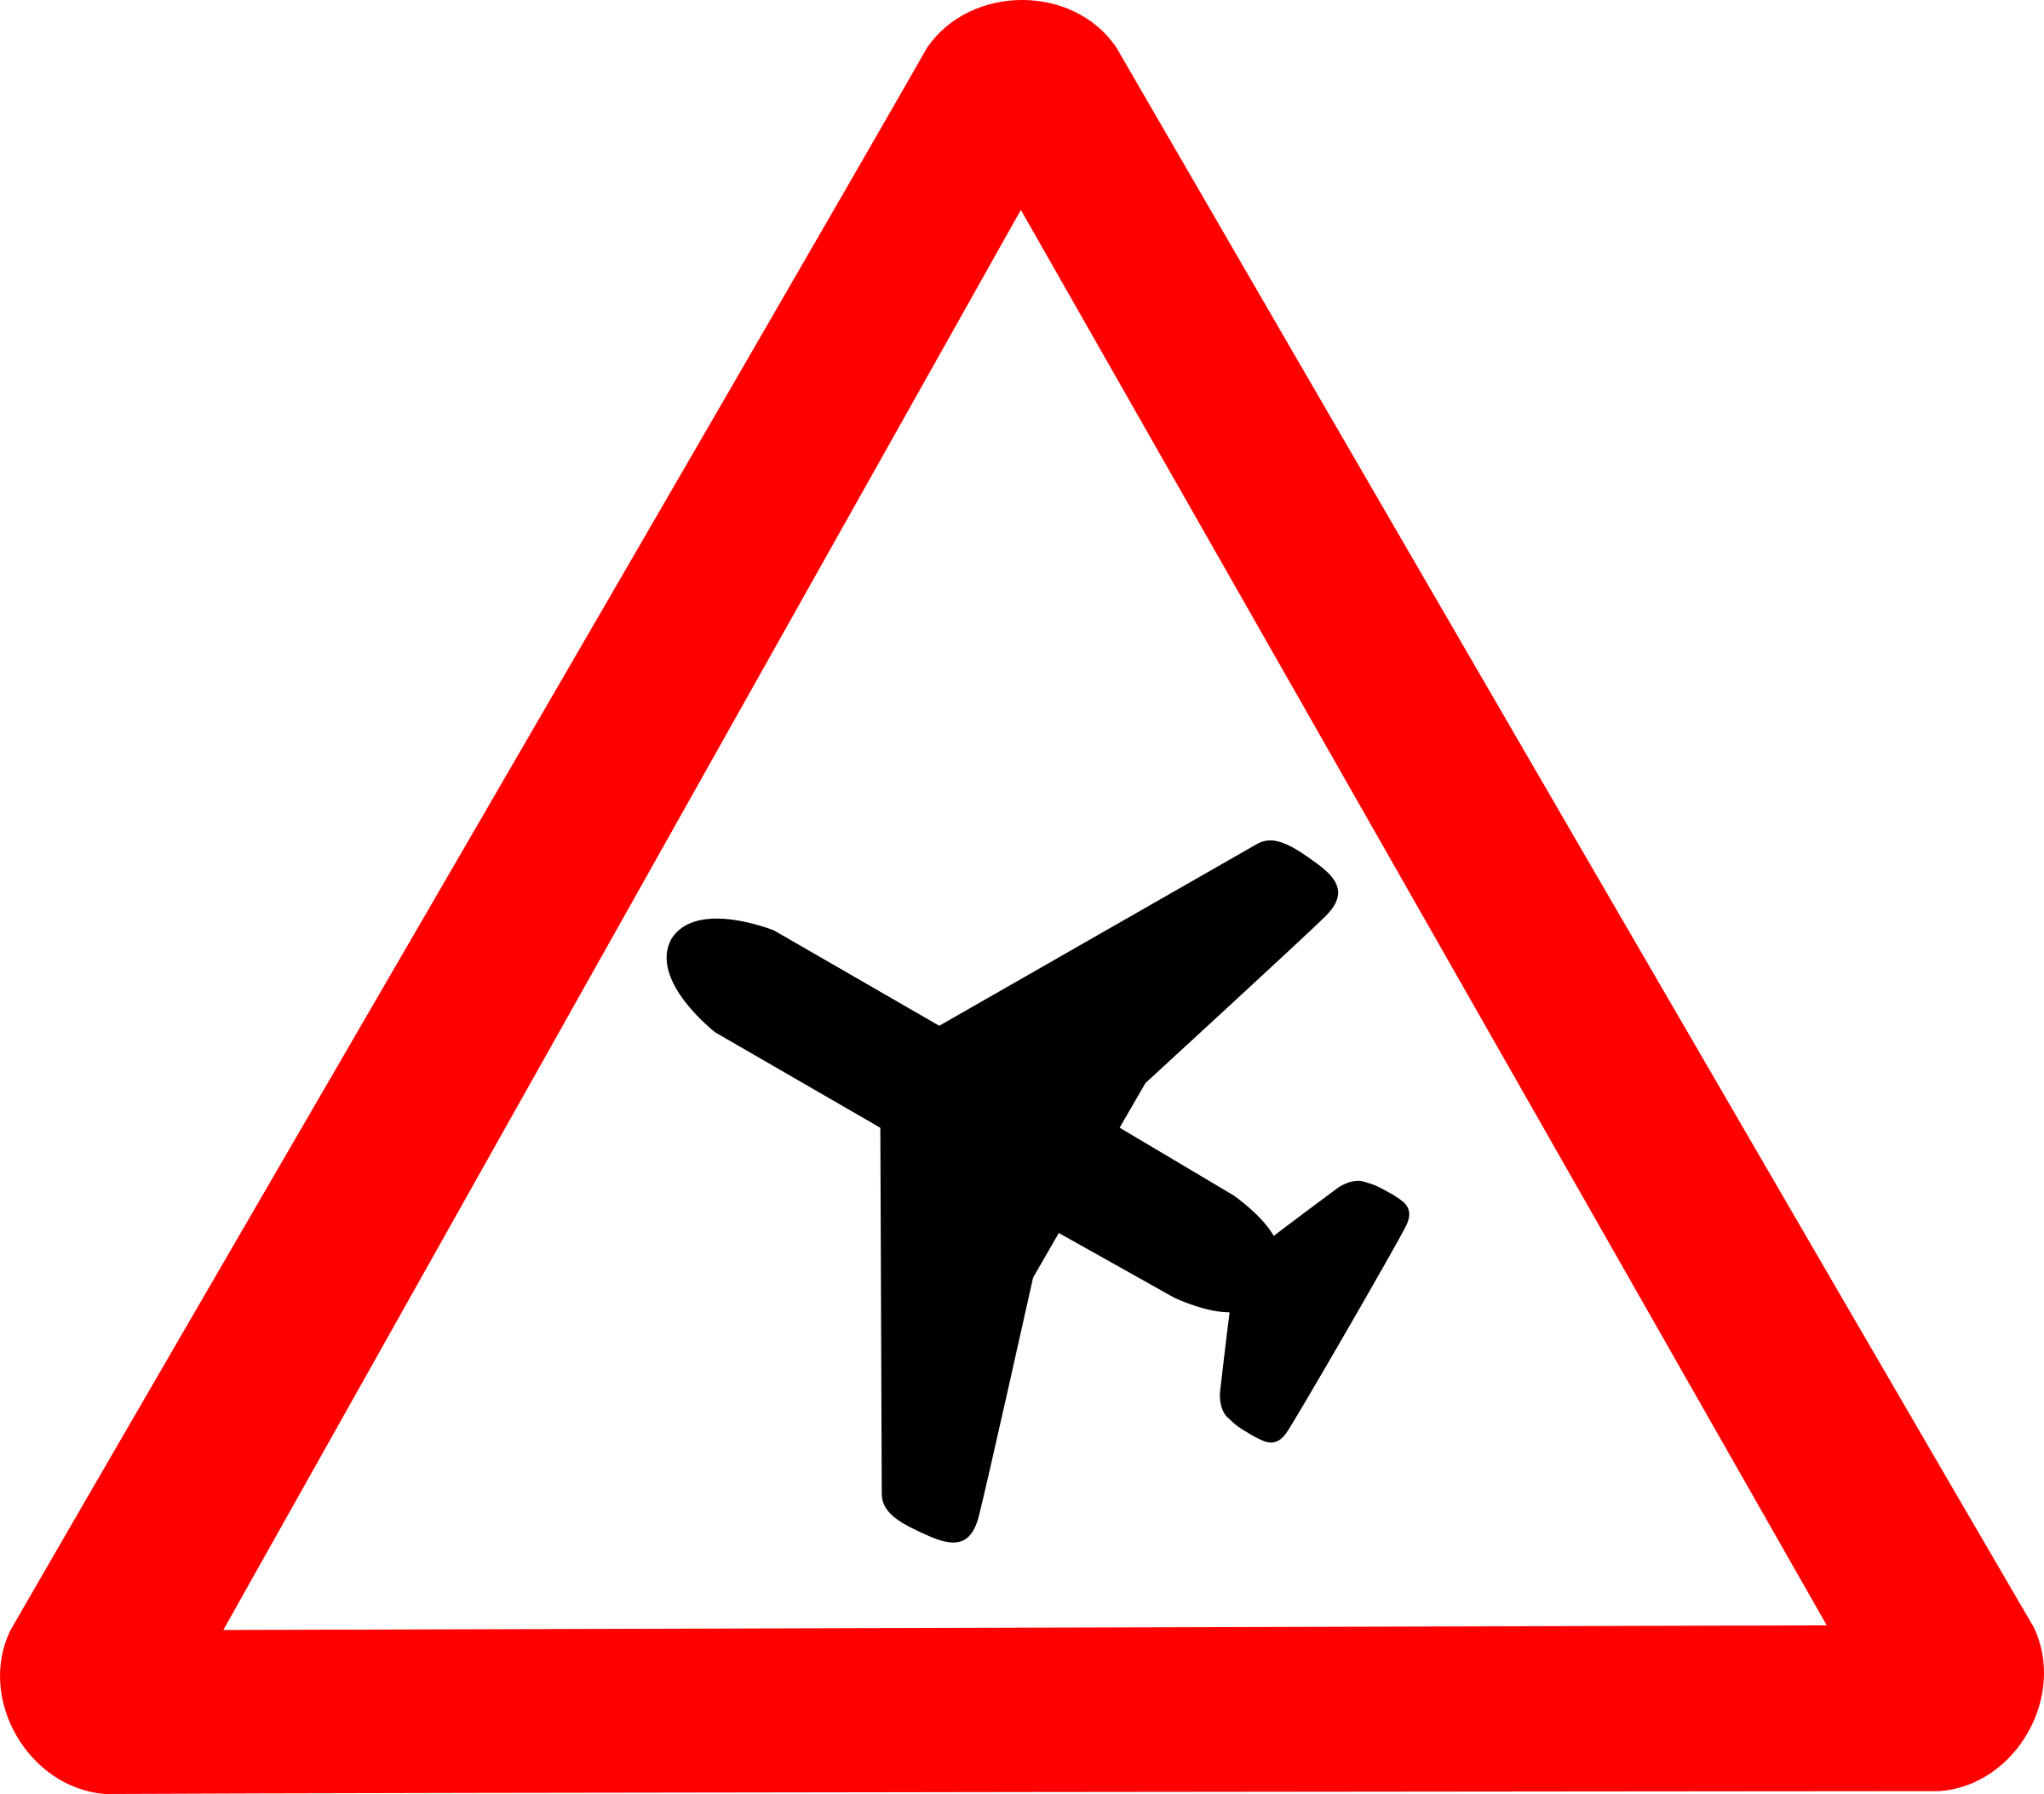 Roadsign Aiplane by Simarilius